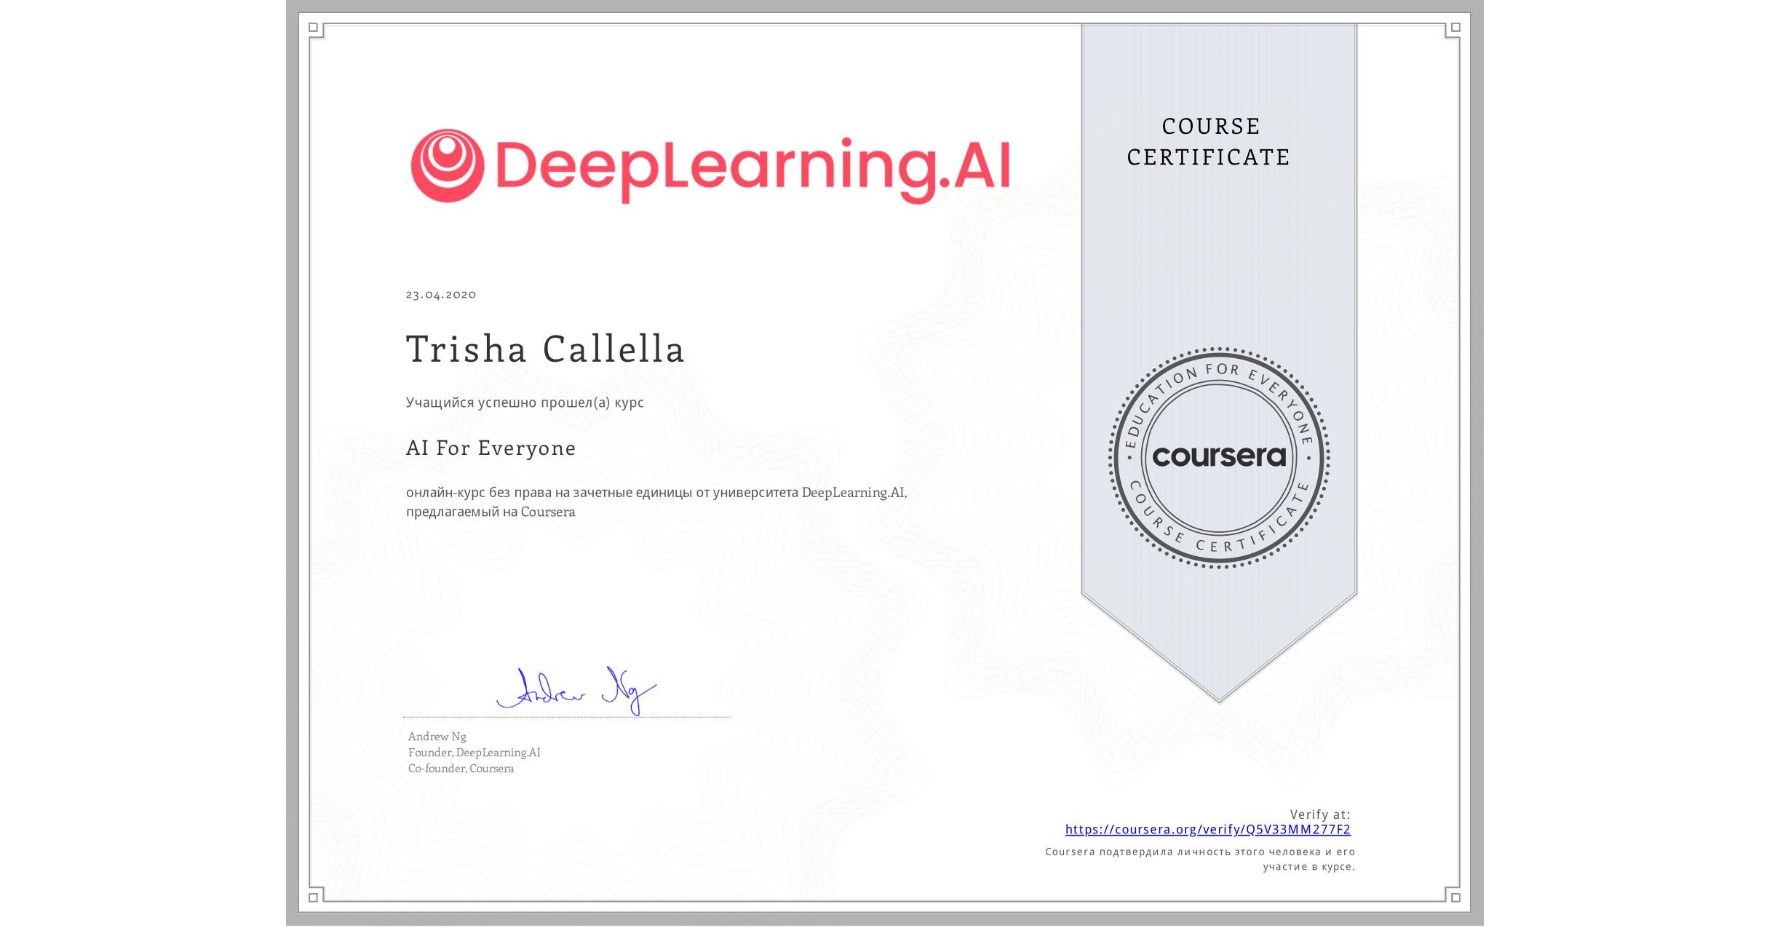 View certificate for Trisha Callella, AI For Everyone, an online non-credit course authorized by DeepLearning.AI and offered through Coursera